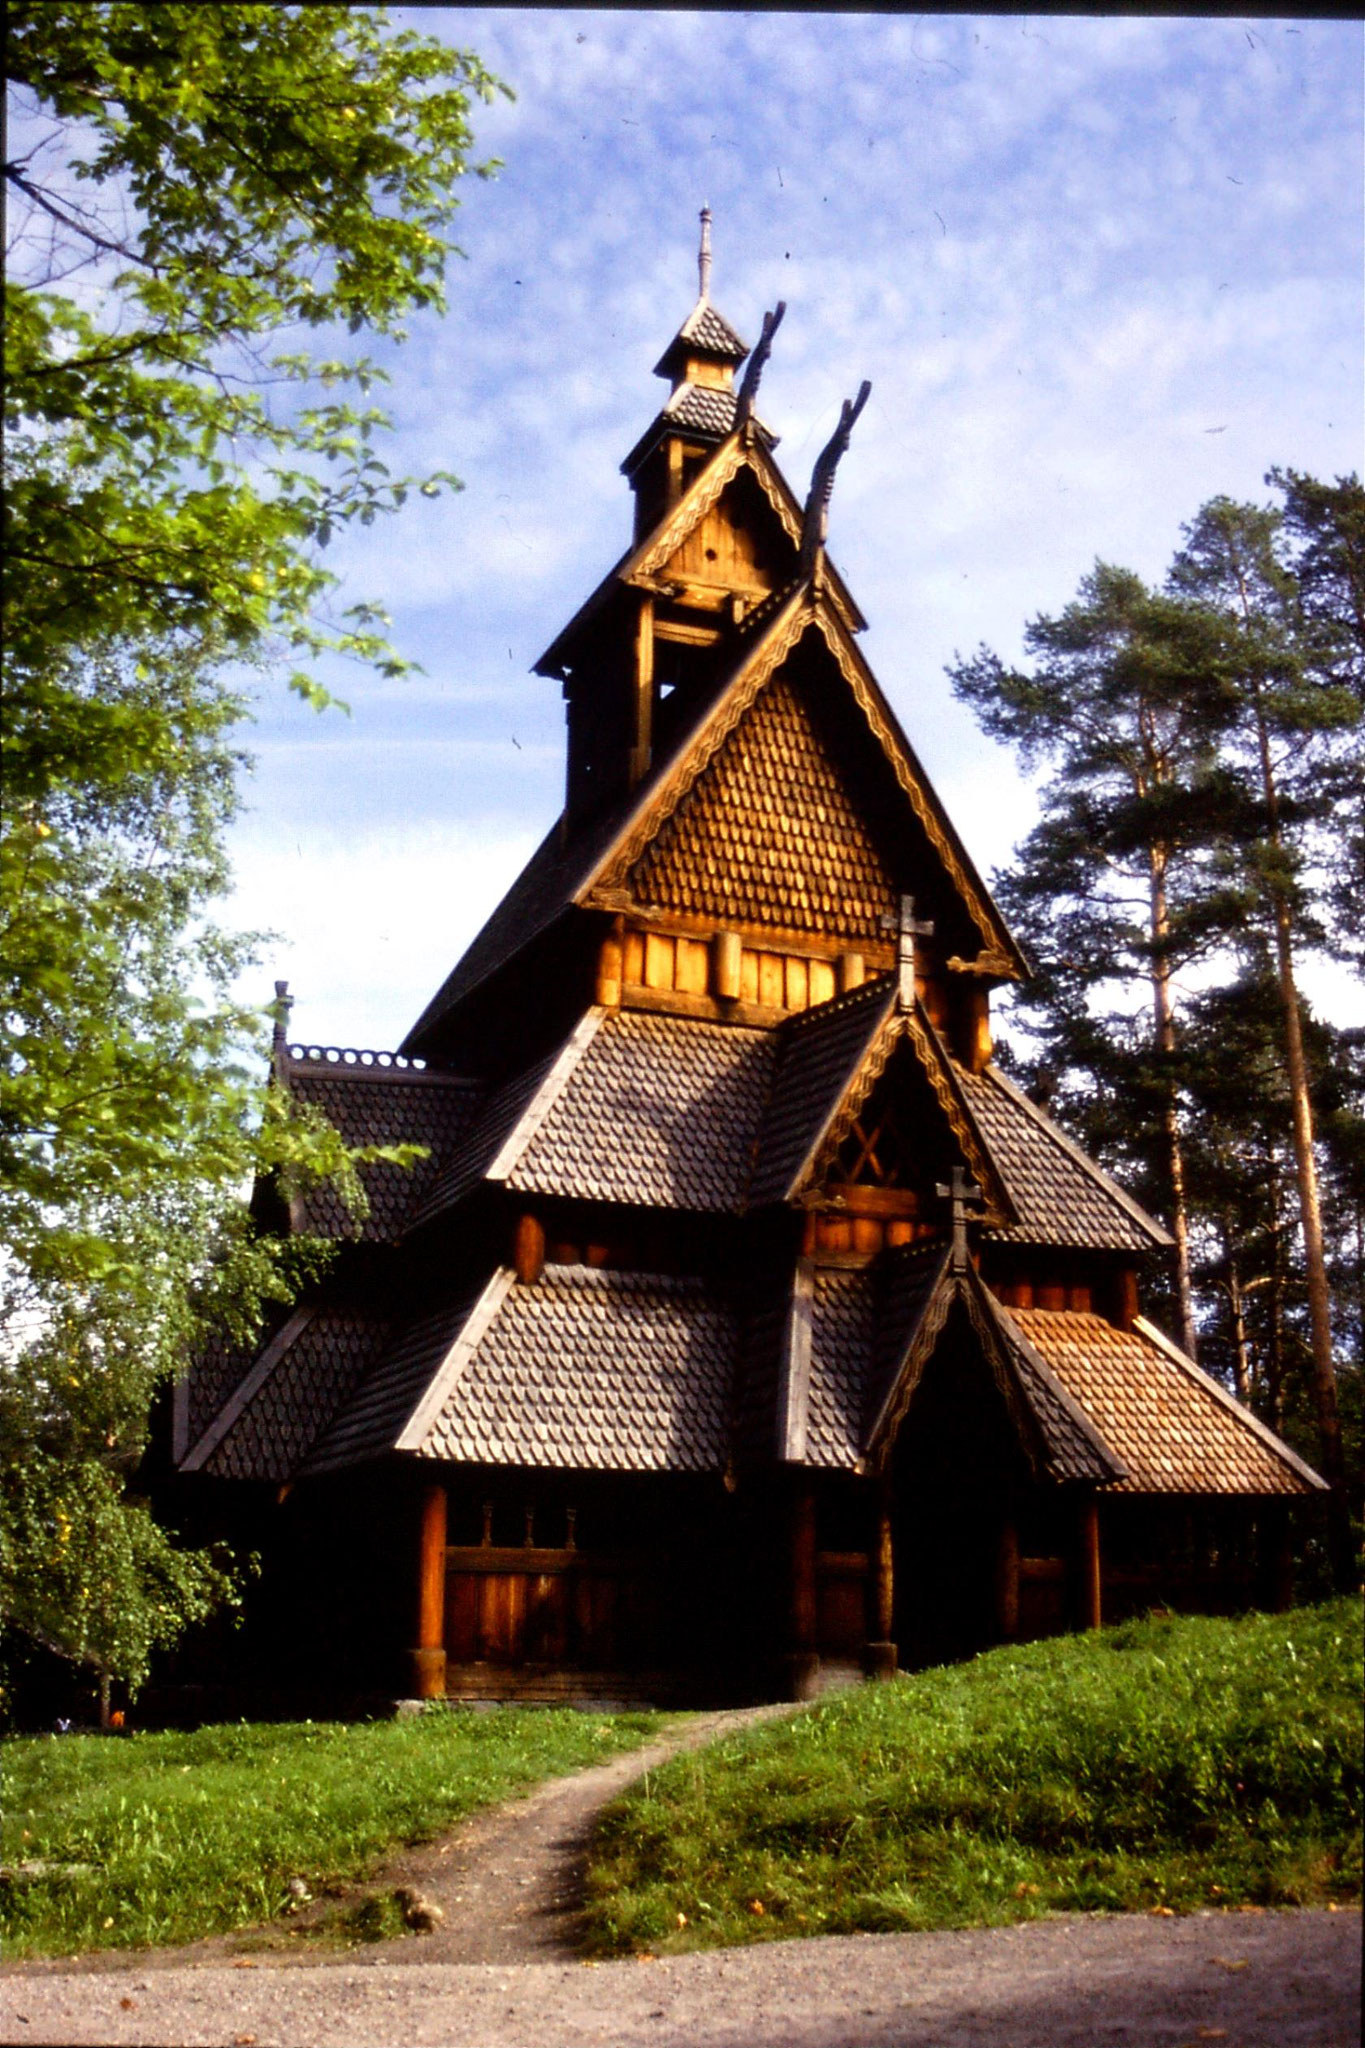 16/9/1988: 9: Oslo Folk Museum stave church